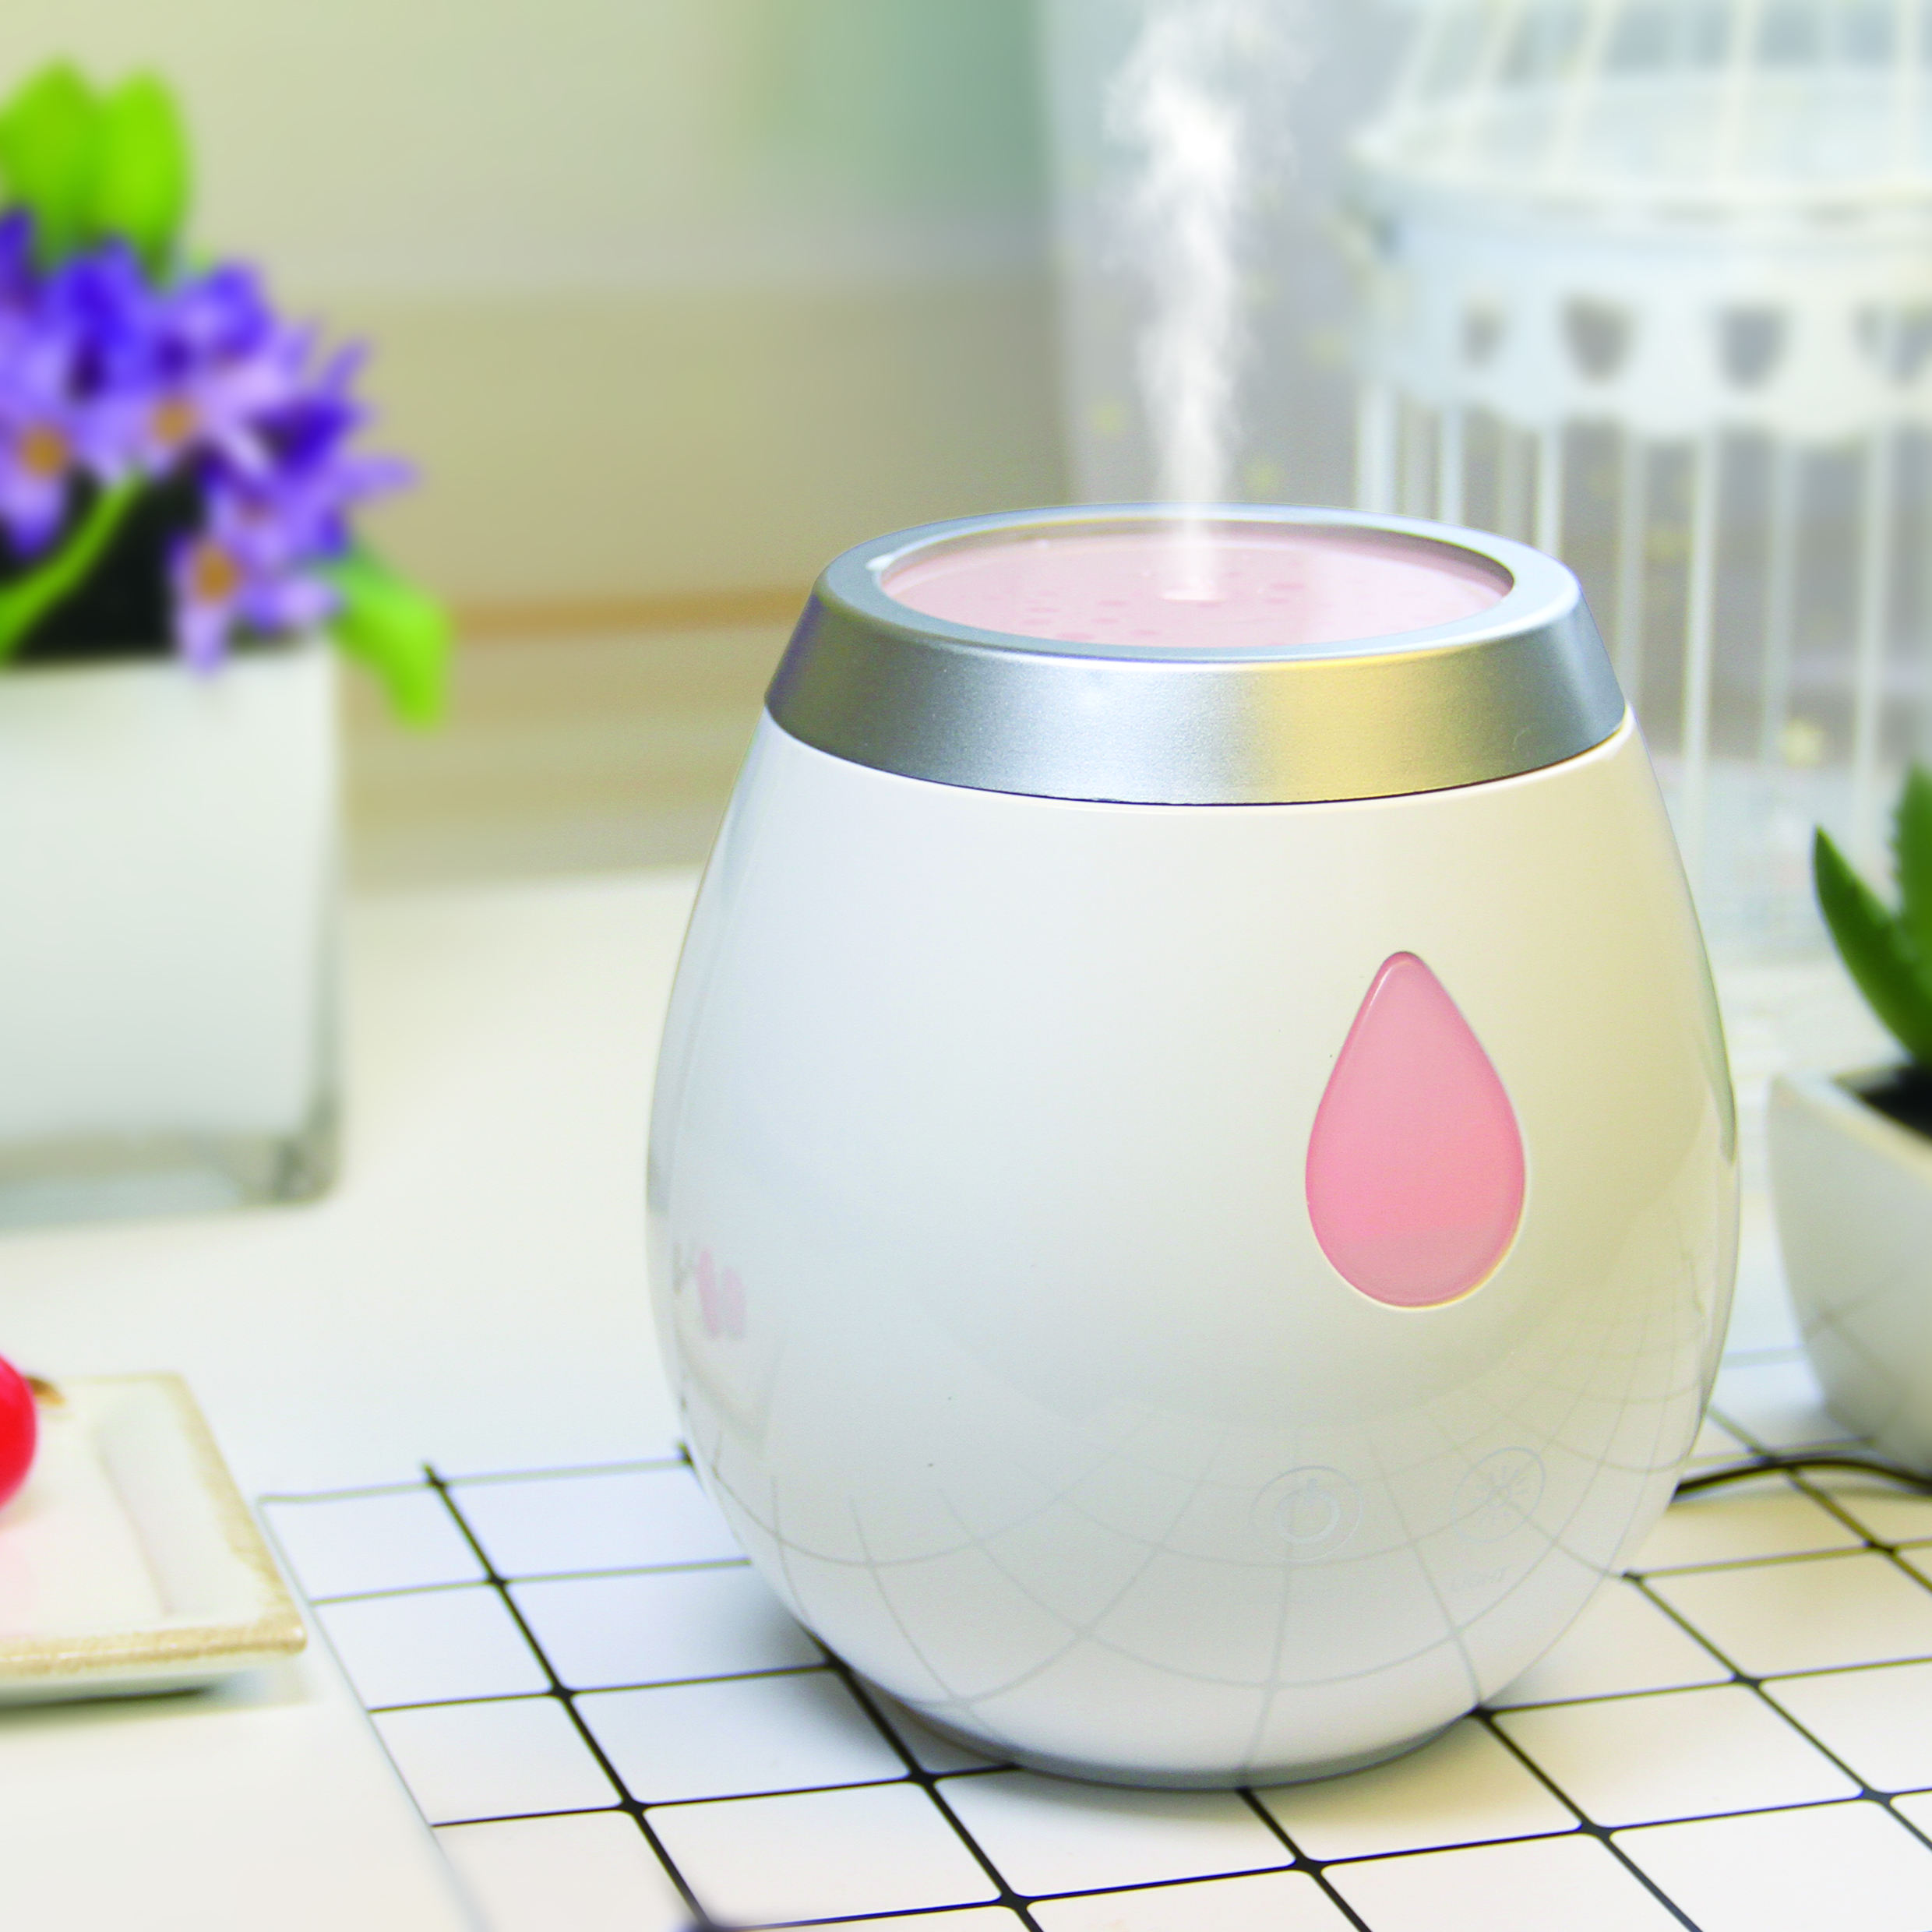 Spa USB Ultrasonic Humidifier Aroma Diffuser Machine